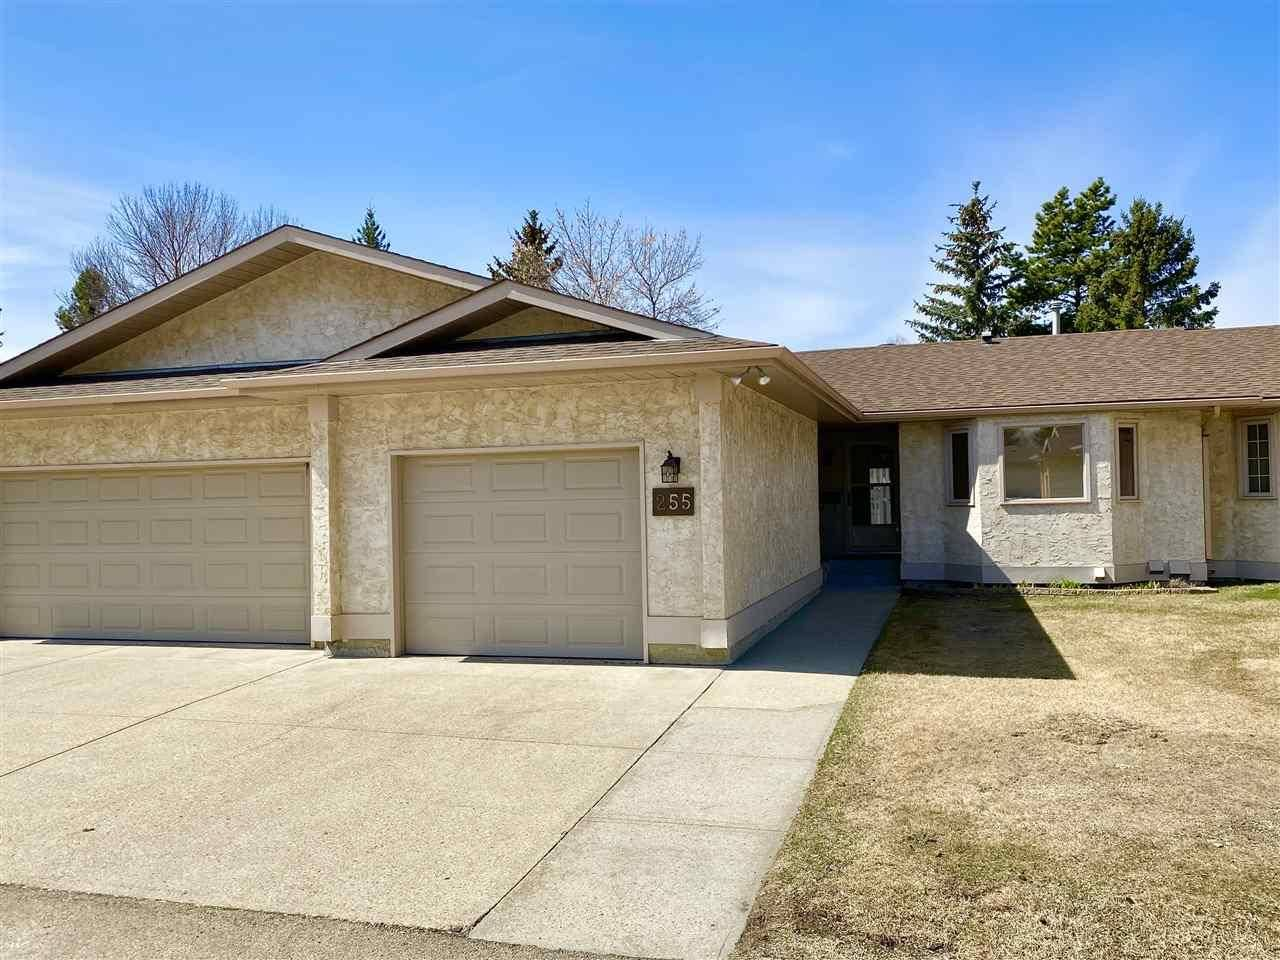 Townhouse for sale at 255 Knottwood Rd Nw Edmonton Alberta - MLS: E4187327